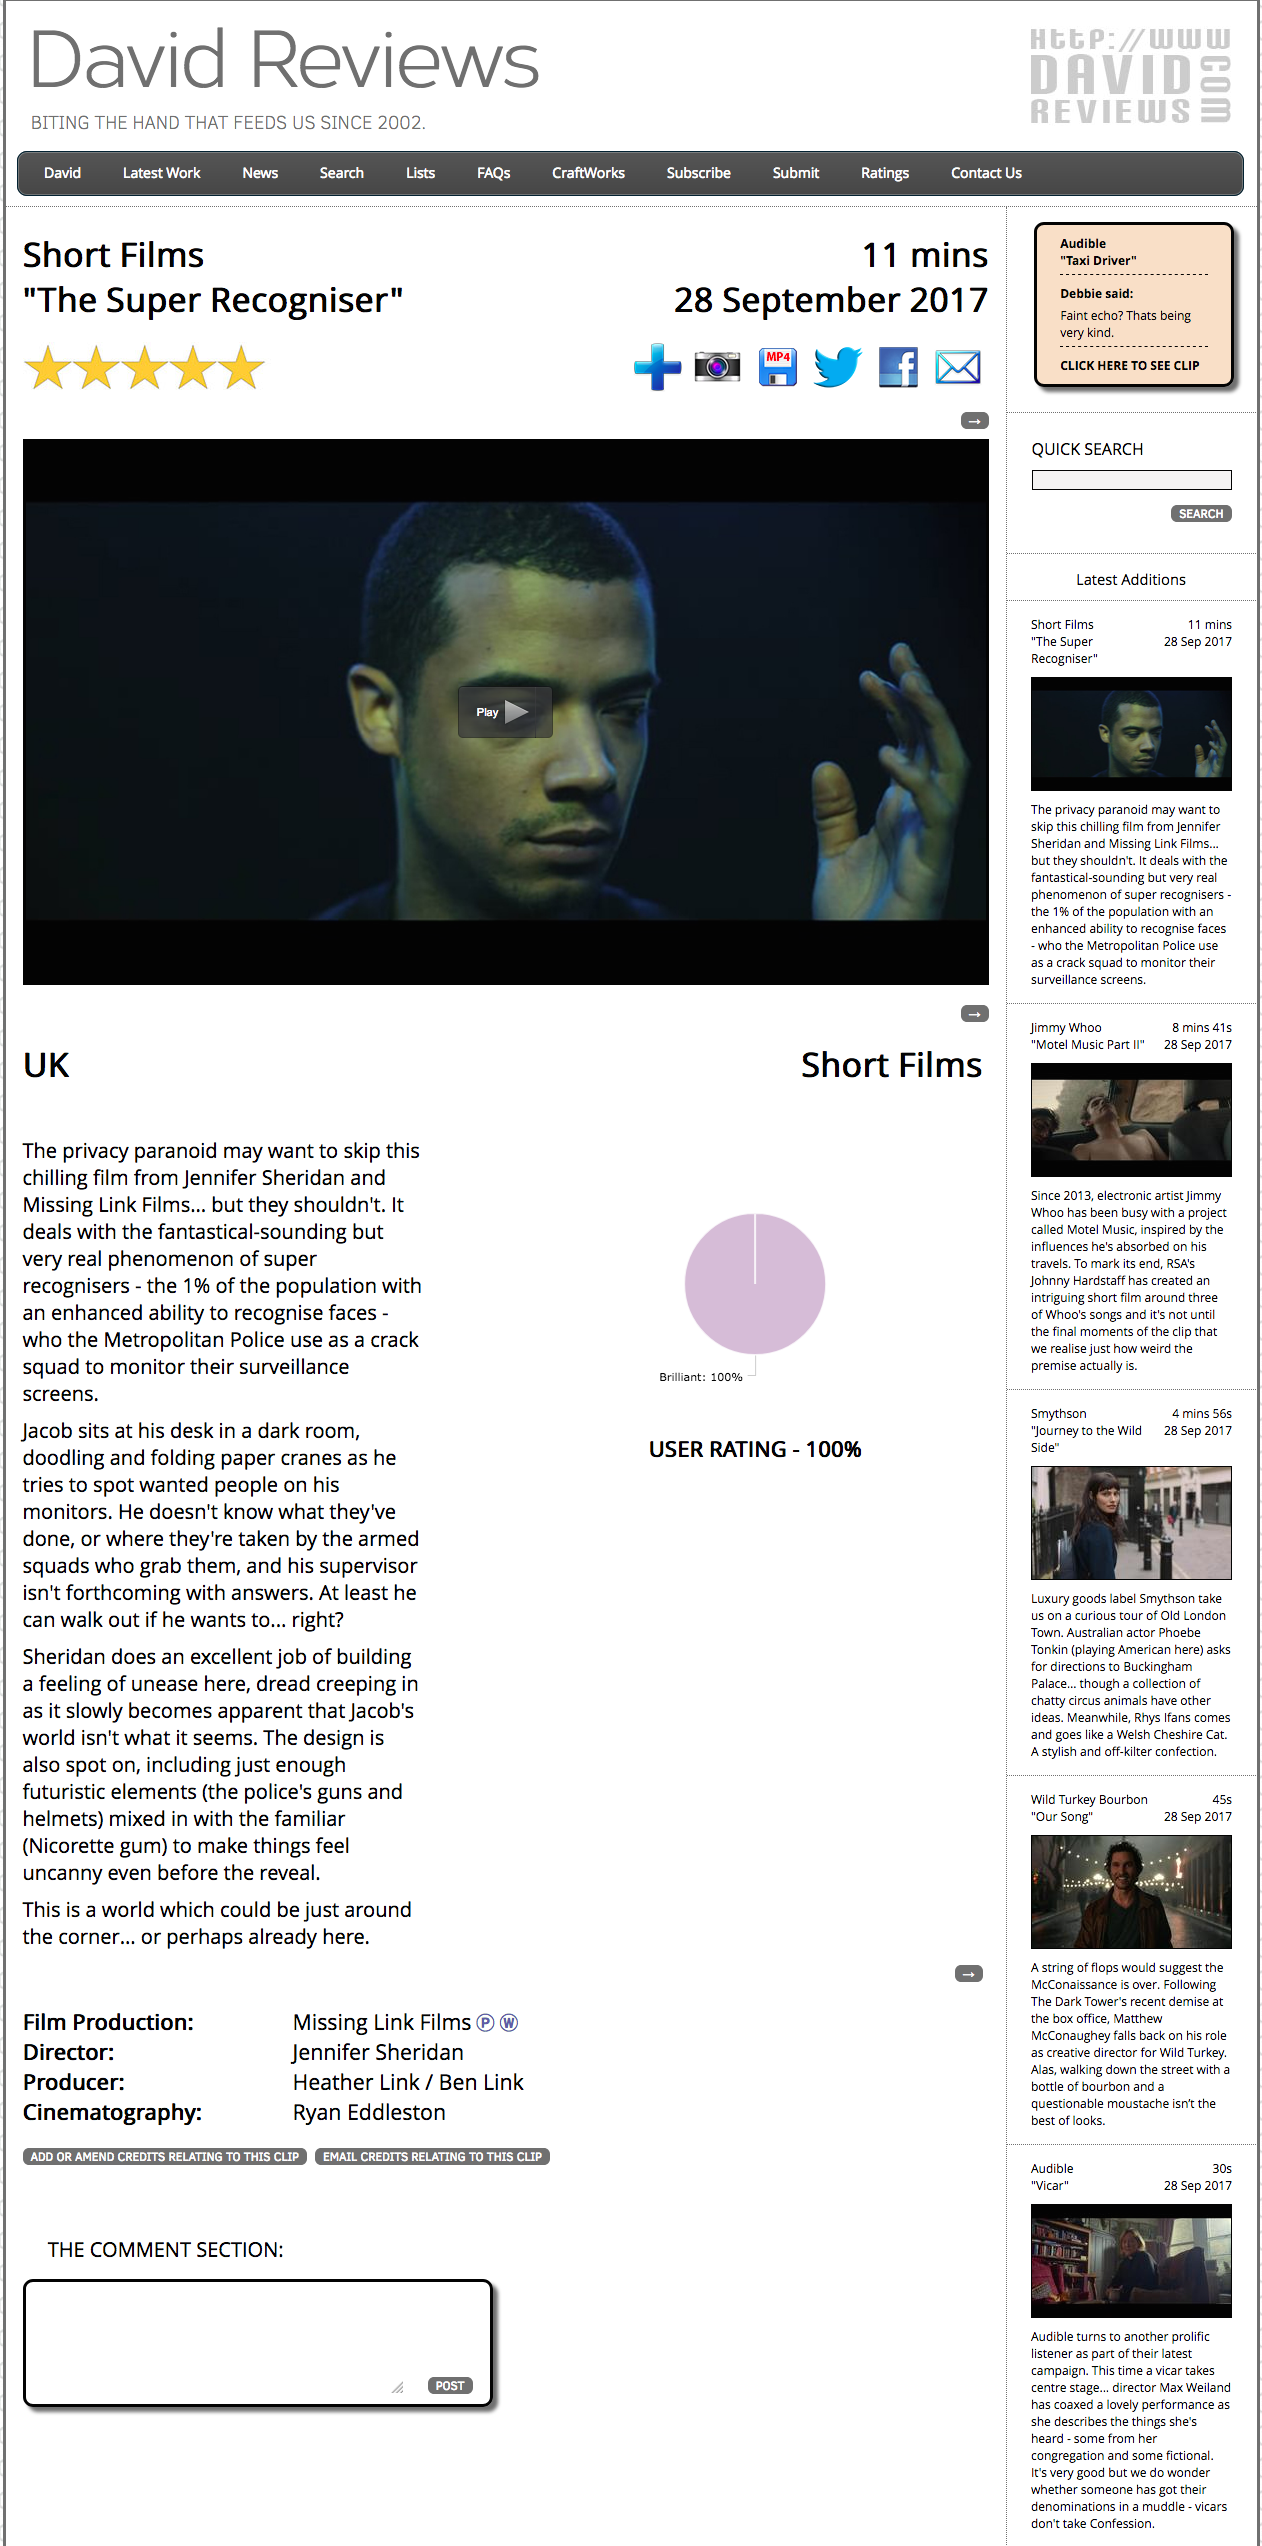 FireShot Capture 2 - Short Films - _The Super Recogniser_ a_ - https___www.davidreviews.com_Clip.asp.png